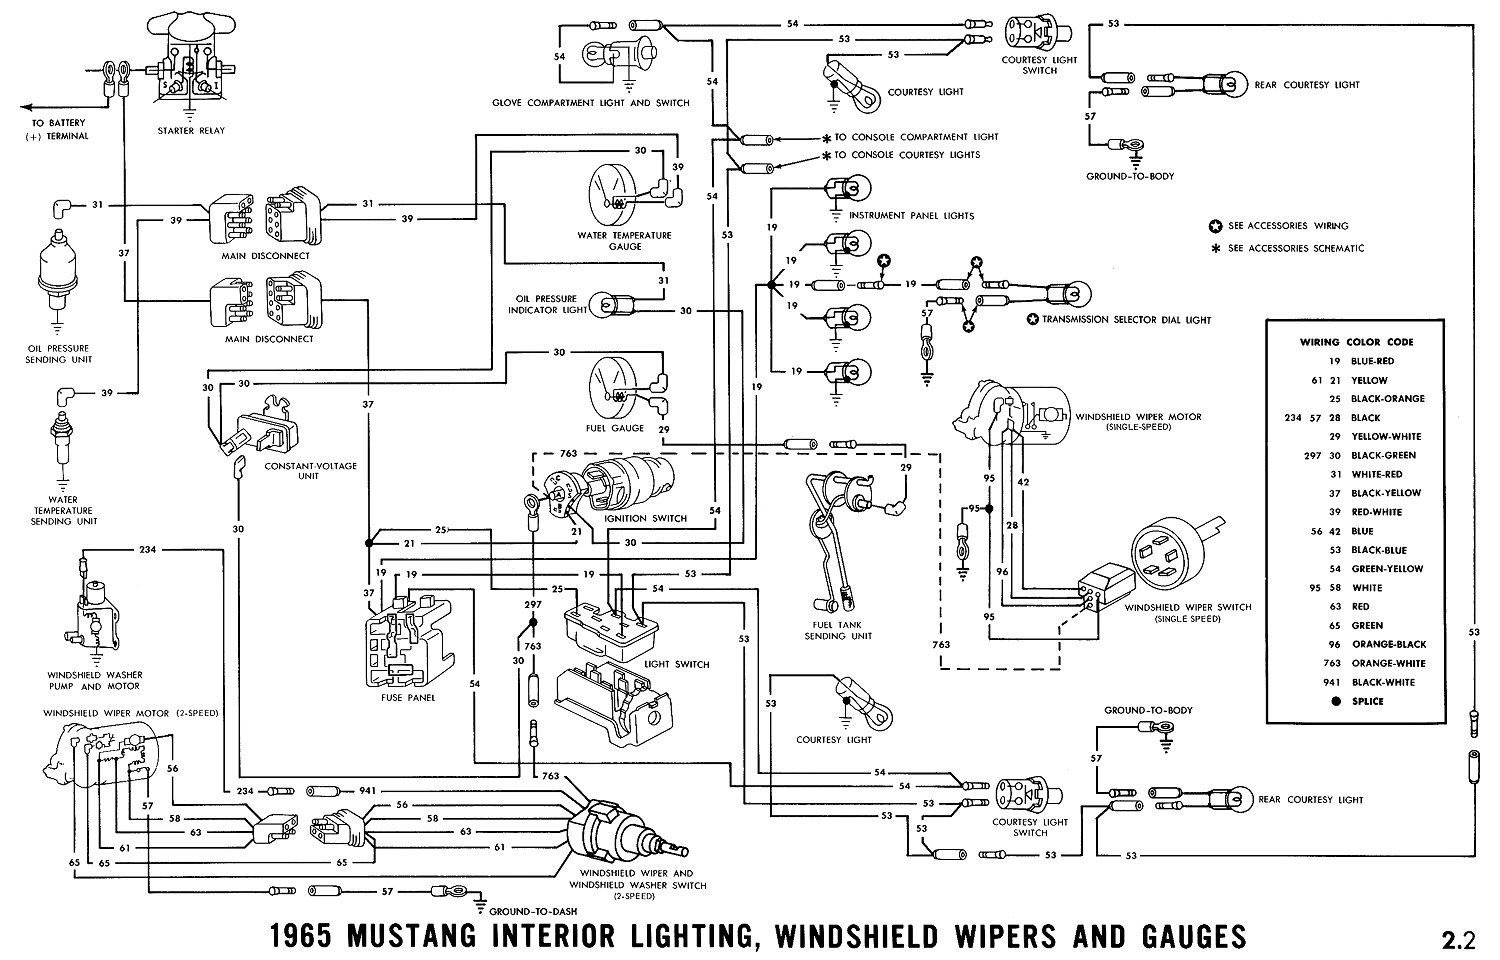 66 Chevelle Turn Signal Wiring Diagram Reveolution Of Mopar Diagrams Instrument Panel 1965 Mustang Schemes U2022 Rh Jarsamsterdam Com Block 67 Chrysler Window Motor